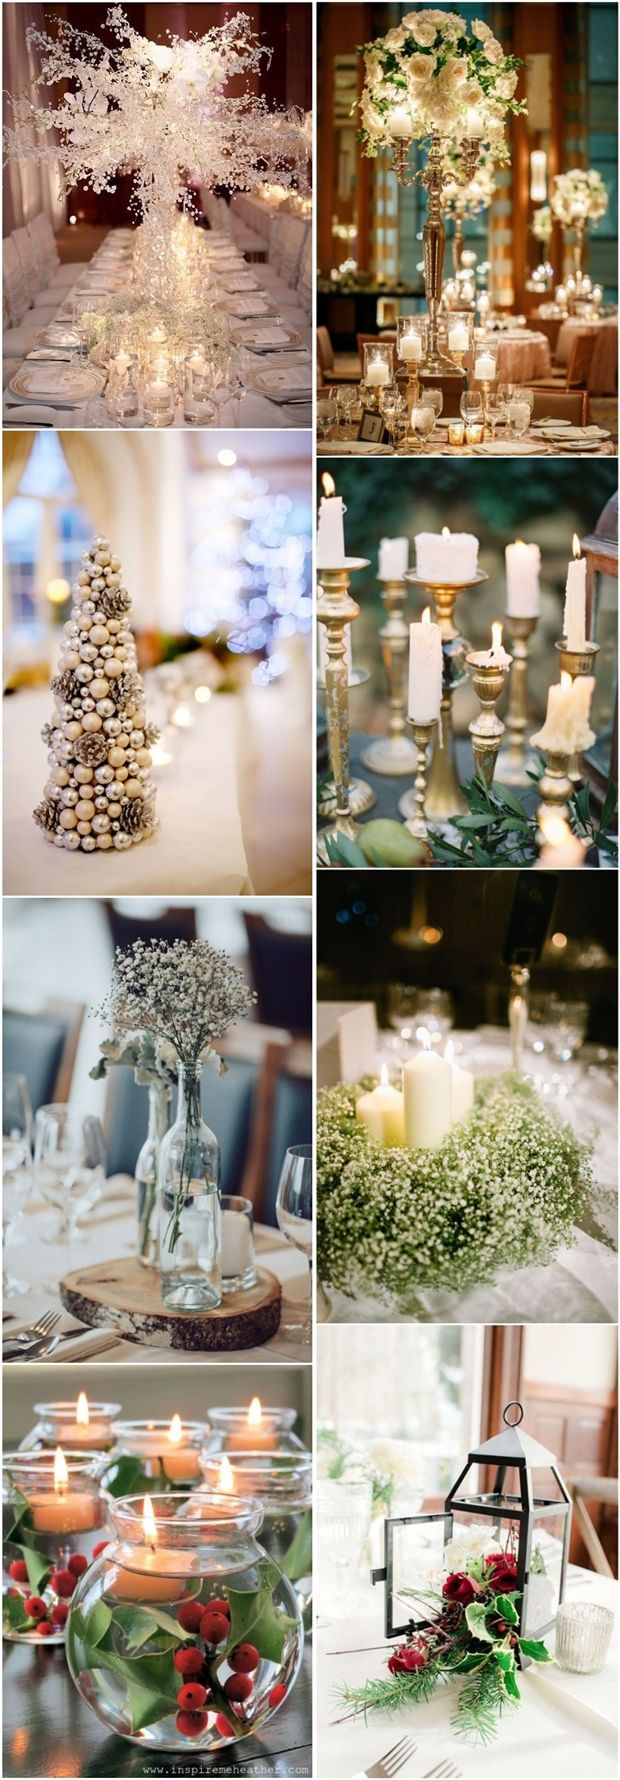 40 Stunning Winter Wedding Centerpiece Ideas Wedding